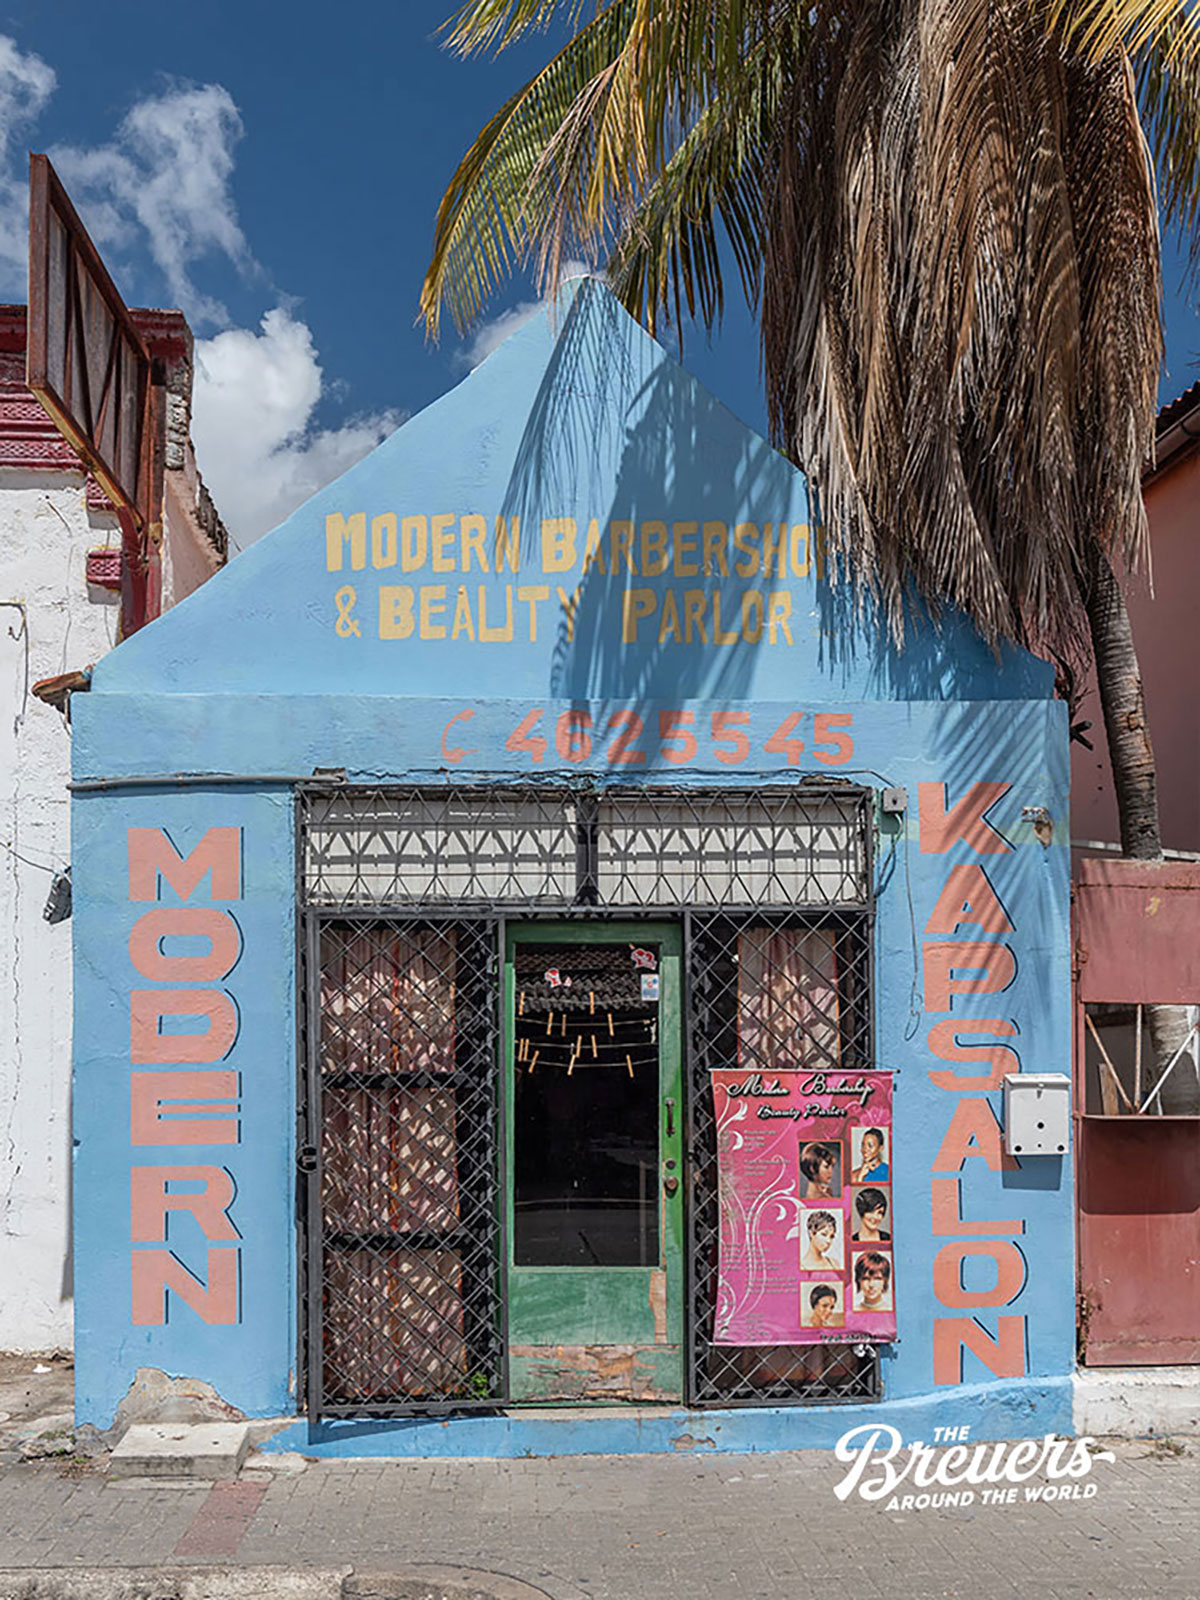 Beautyshop in Willemstadt Curacao